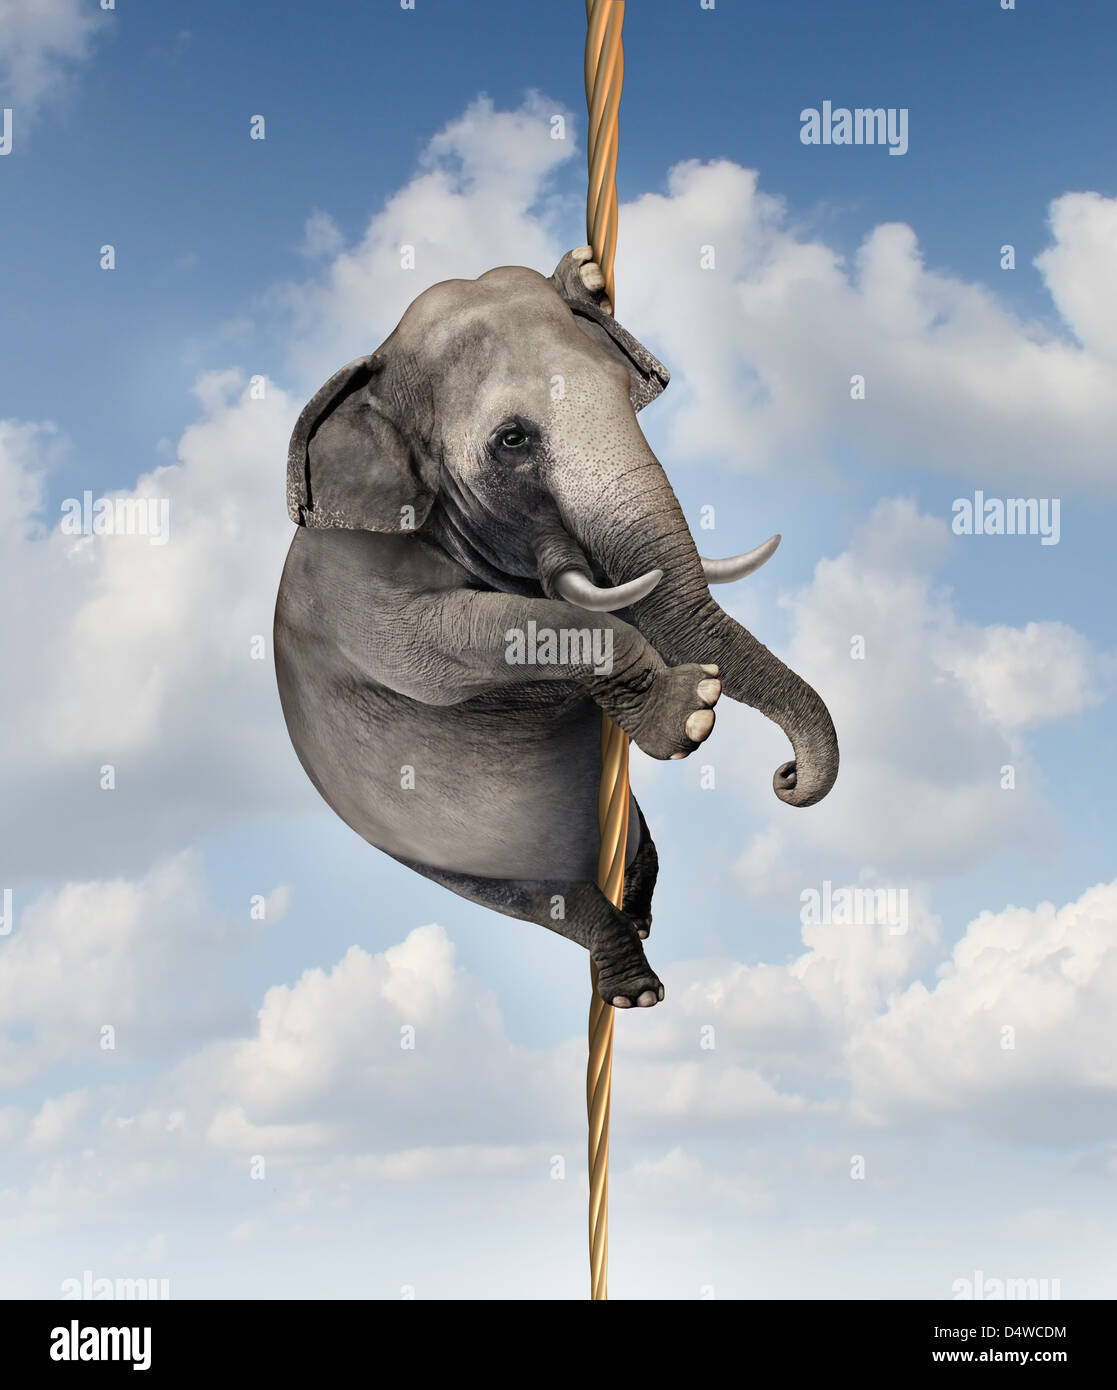 Strong determination managing risk and uncertainty with a large elephant climbing a rope high in the sky as a symbol - Stock Image